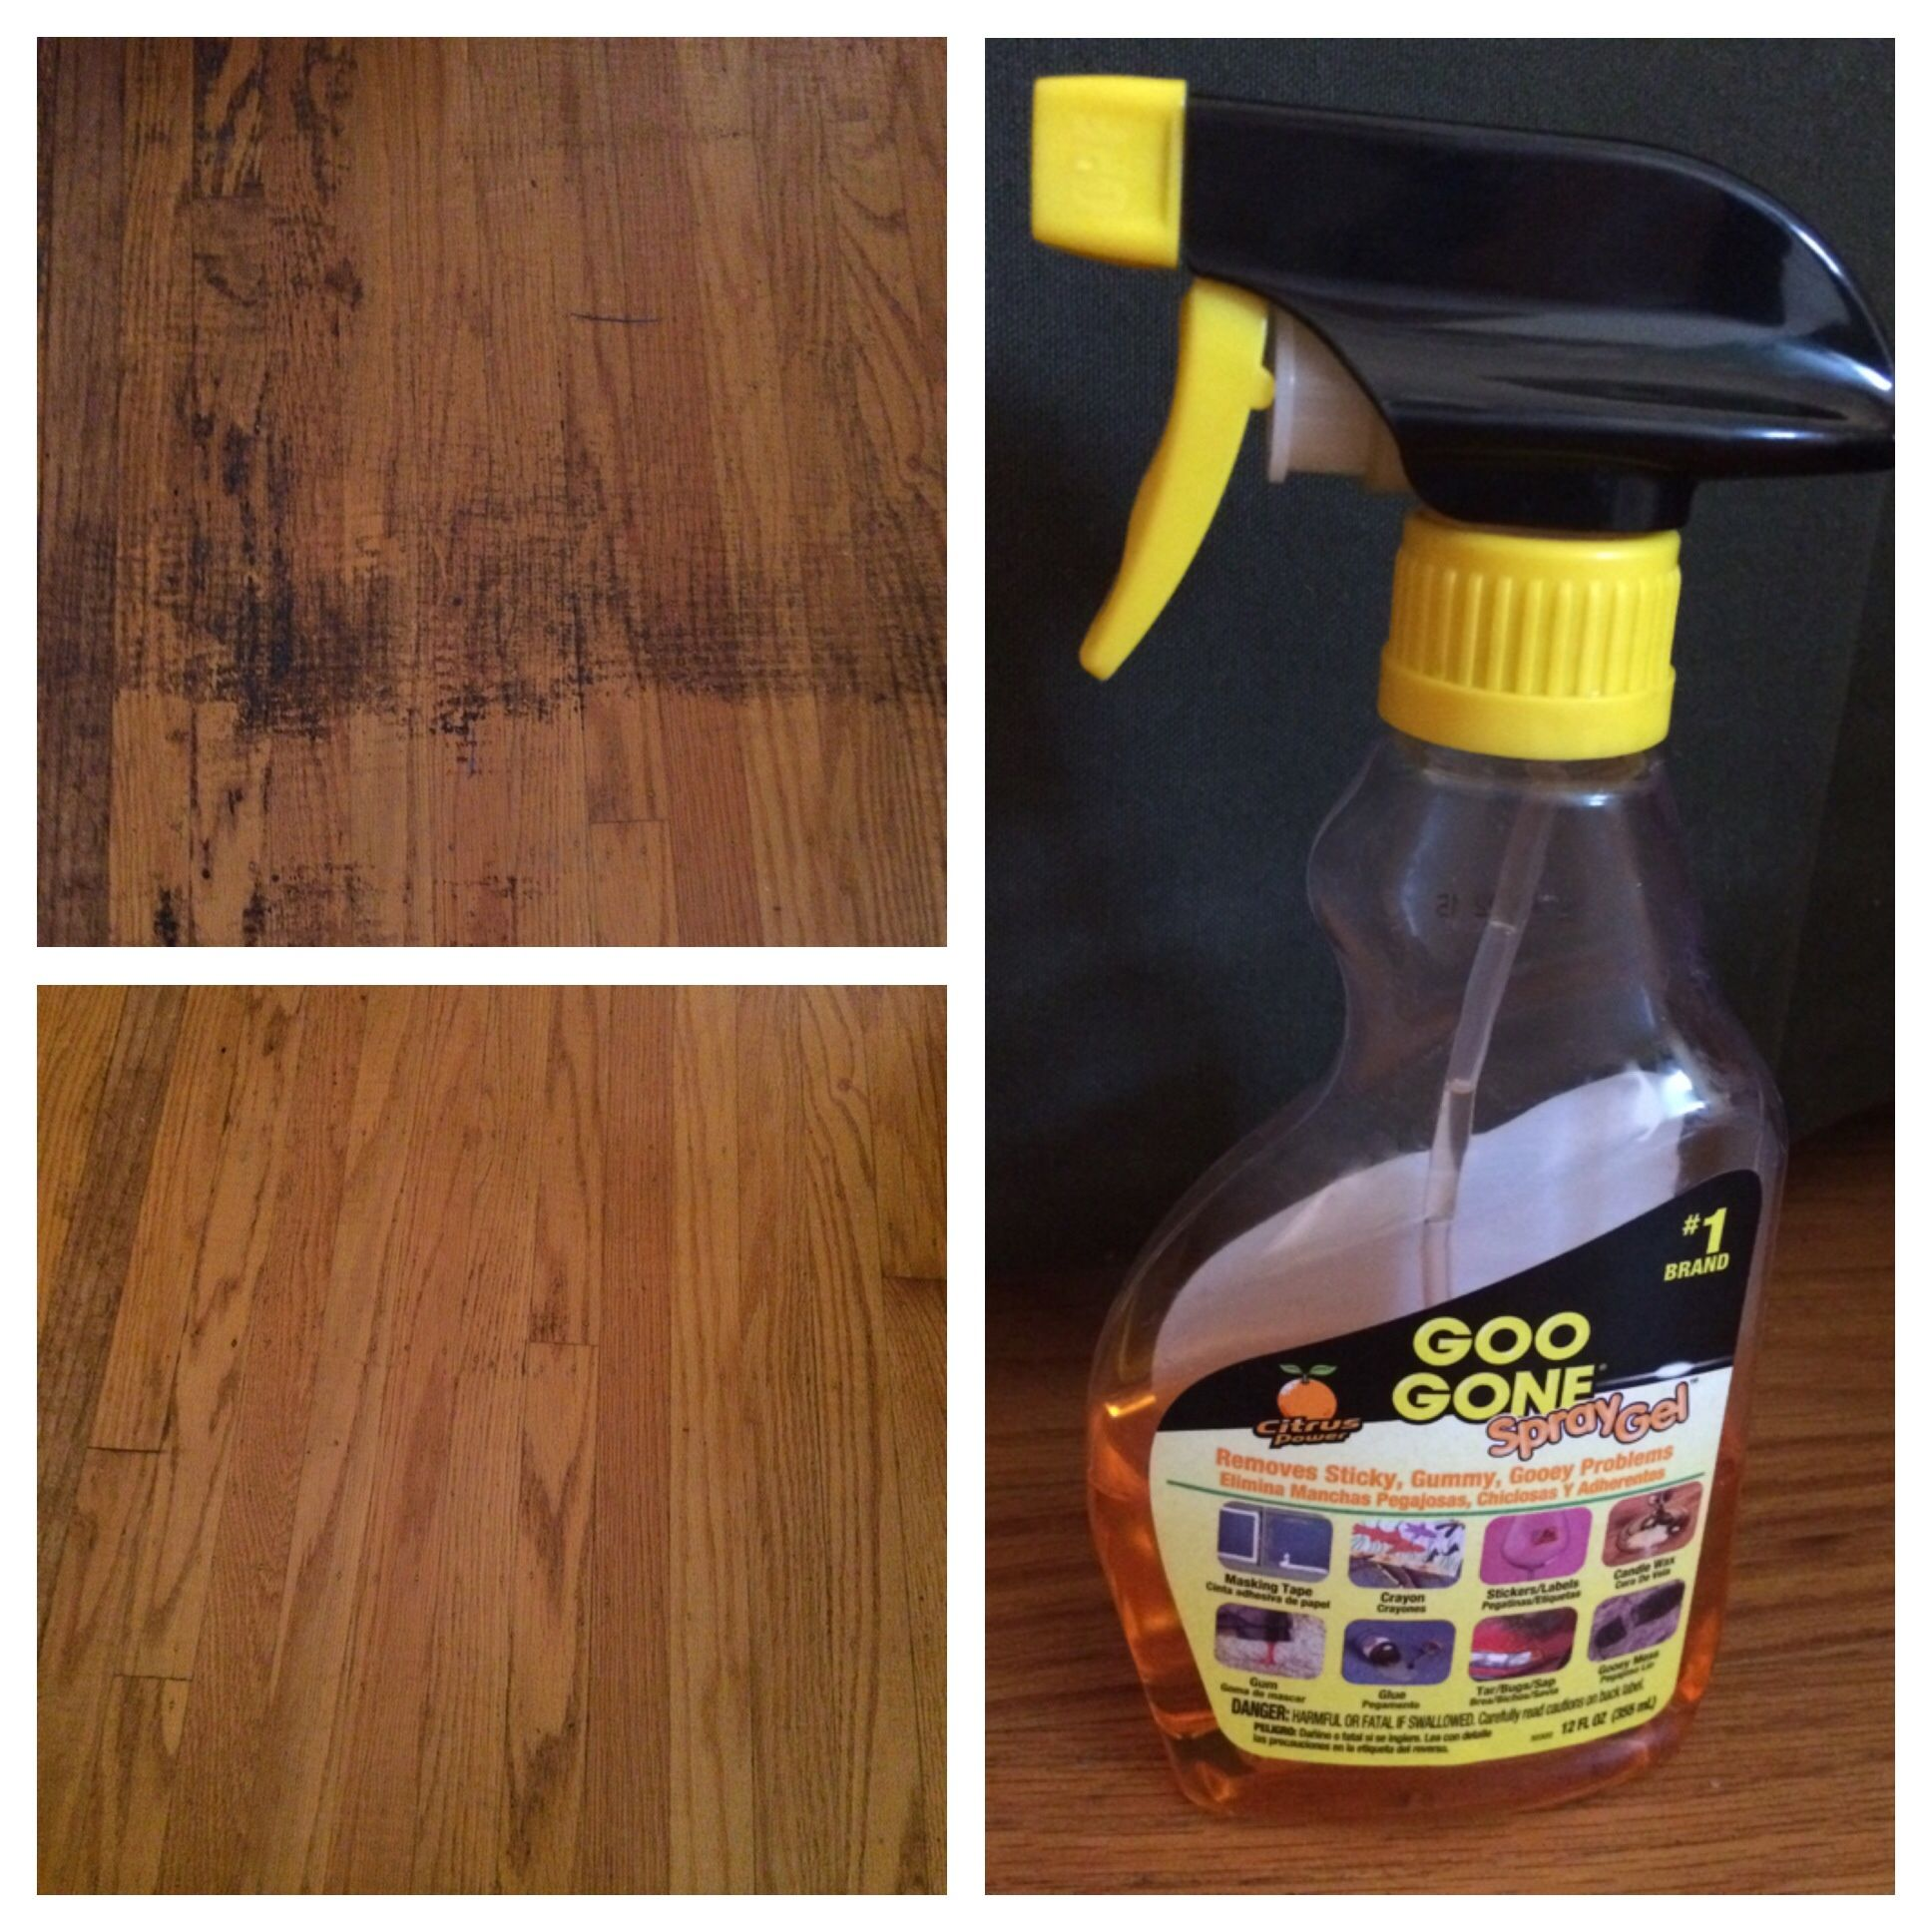 removing adhesive from wooden floor this stuff works great pinterest success. Black Bedroom Furniture Sets. Home Design Ideas